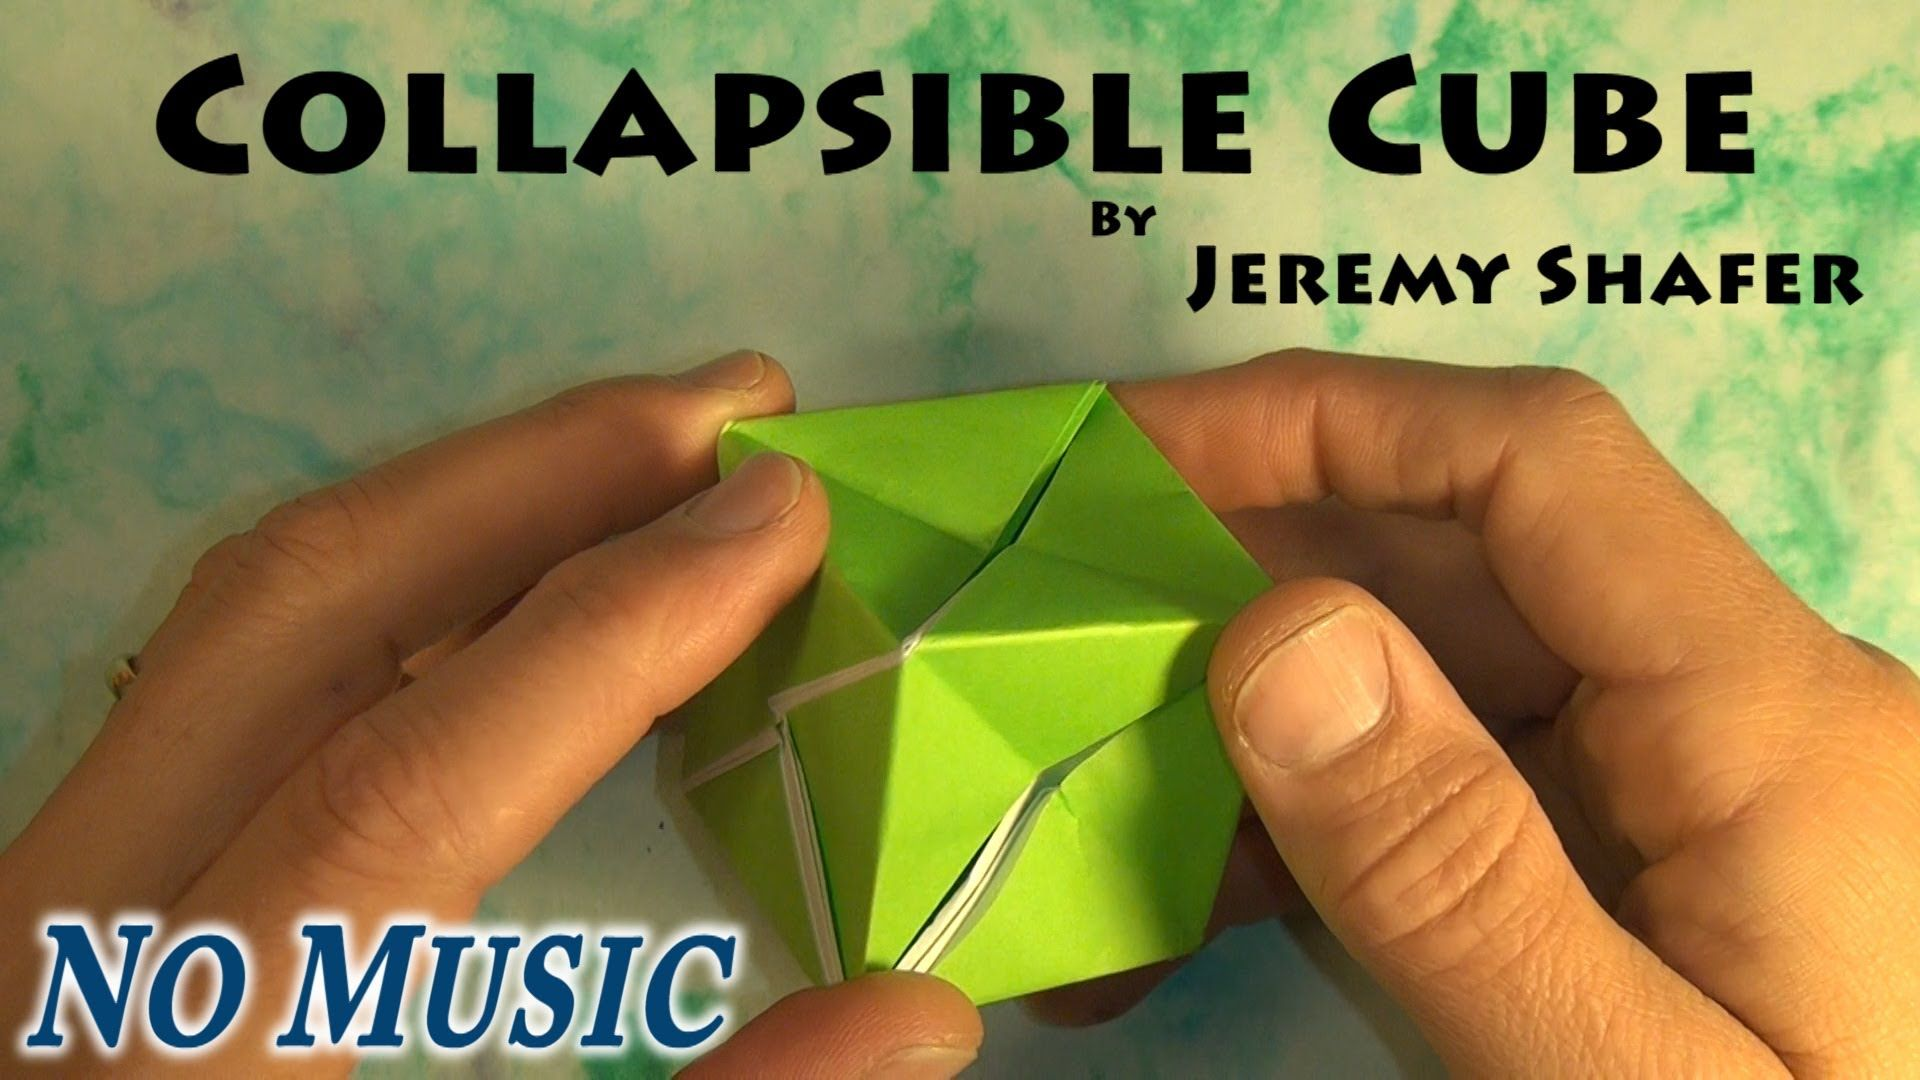 Collapsible Cube No Music Youtube Origami Cube Origami Box Origami